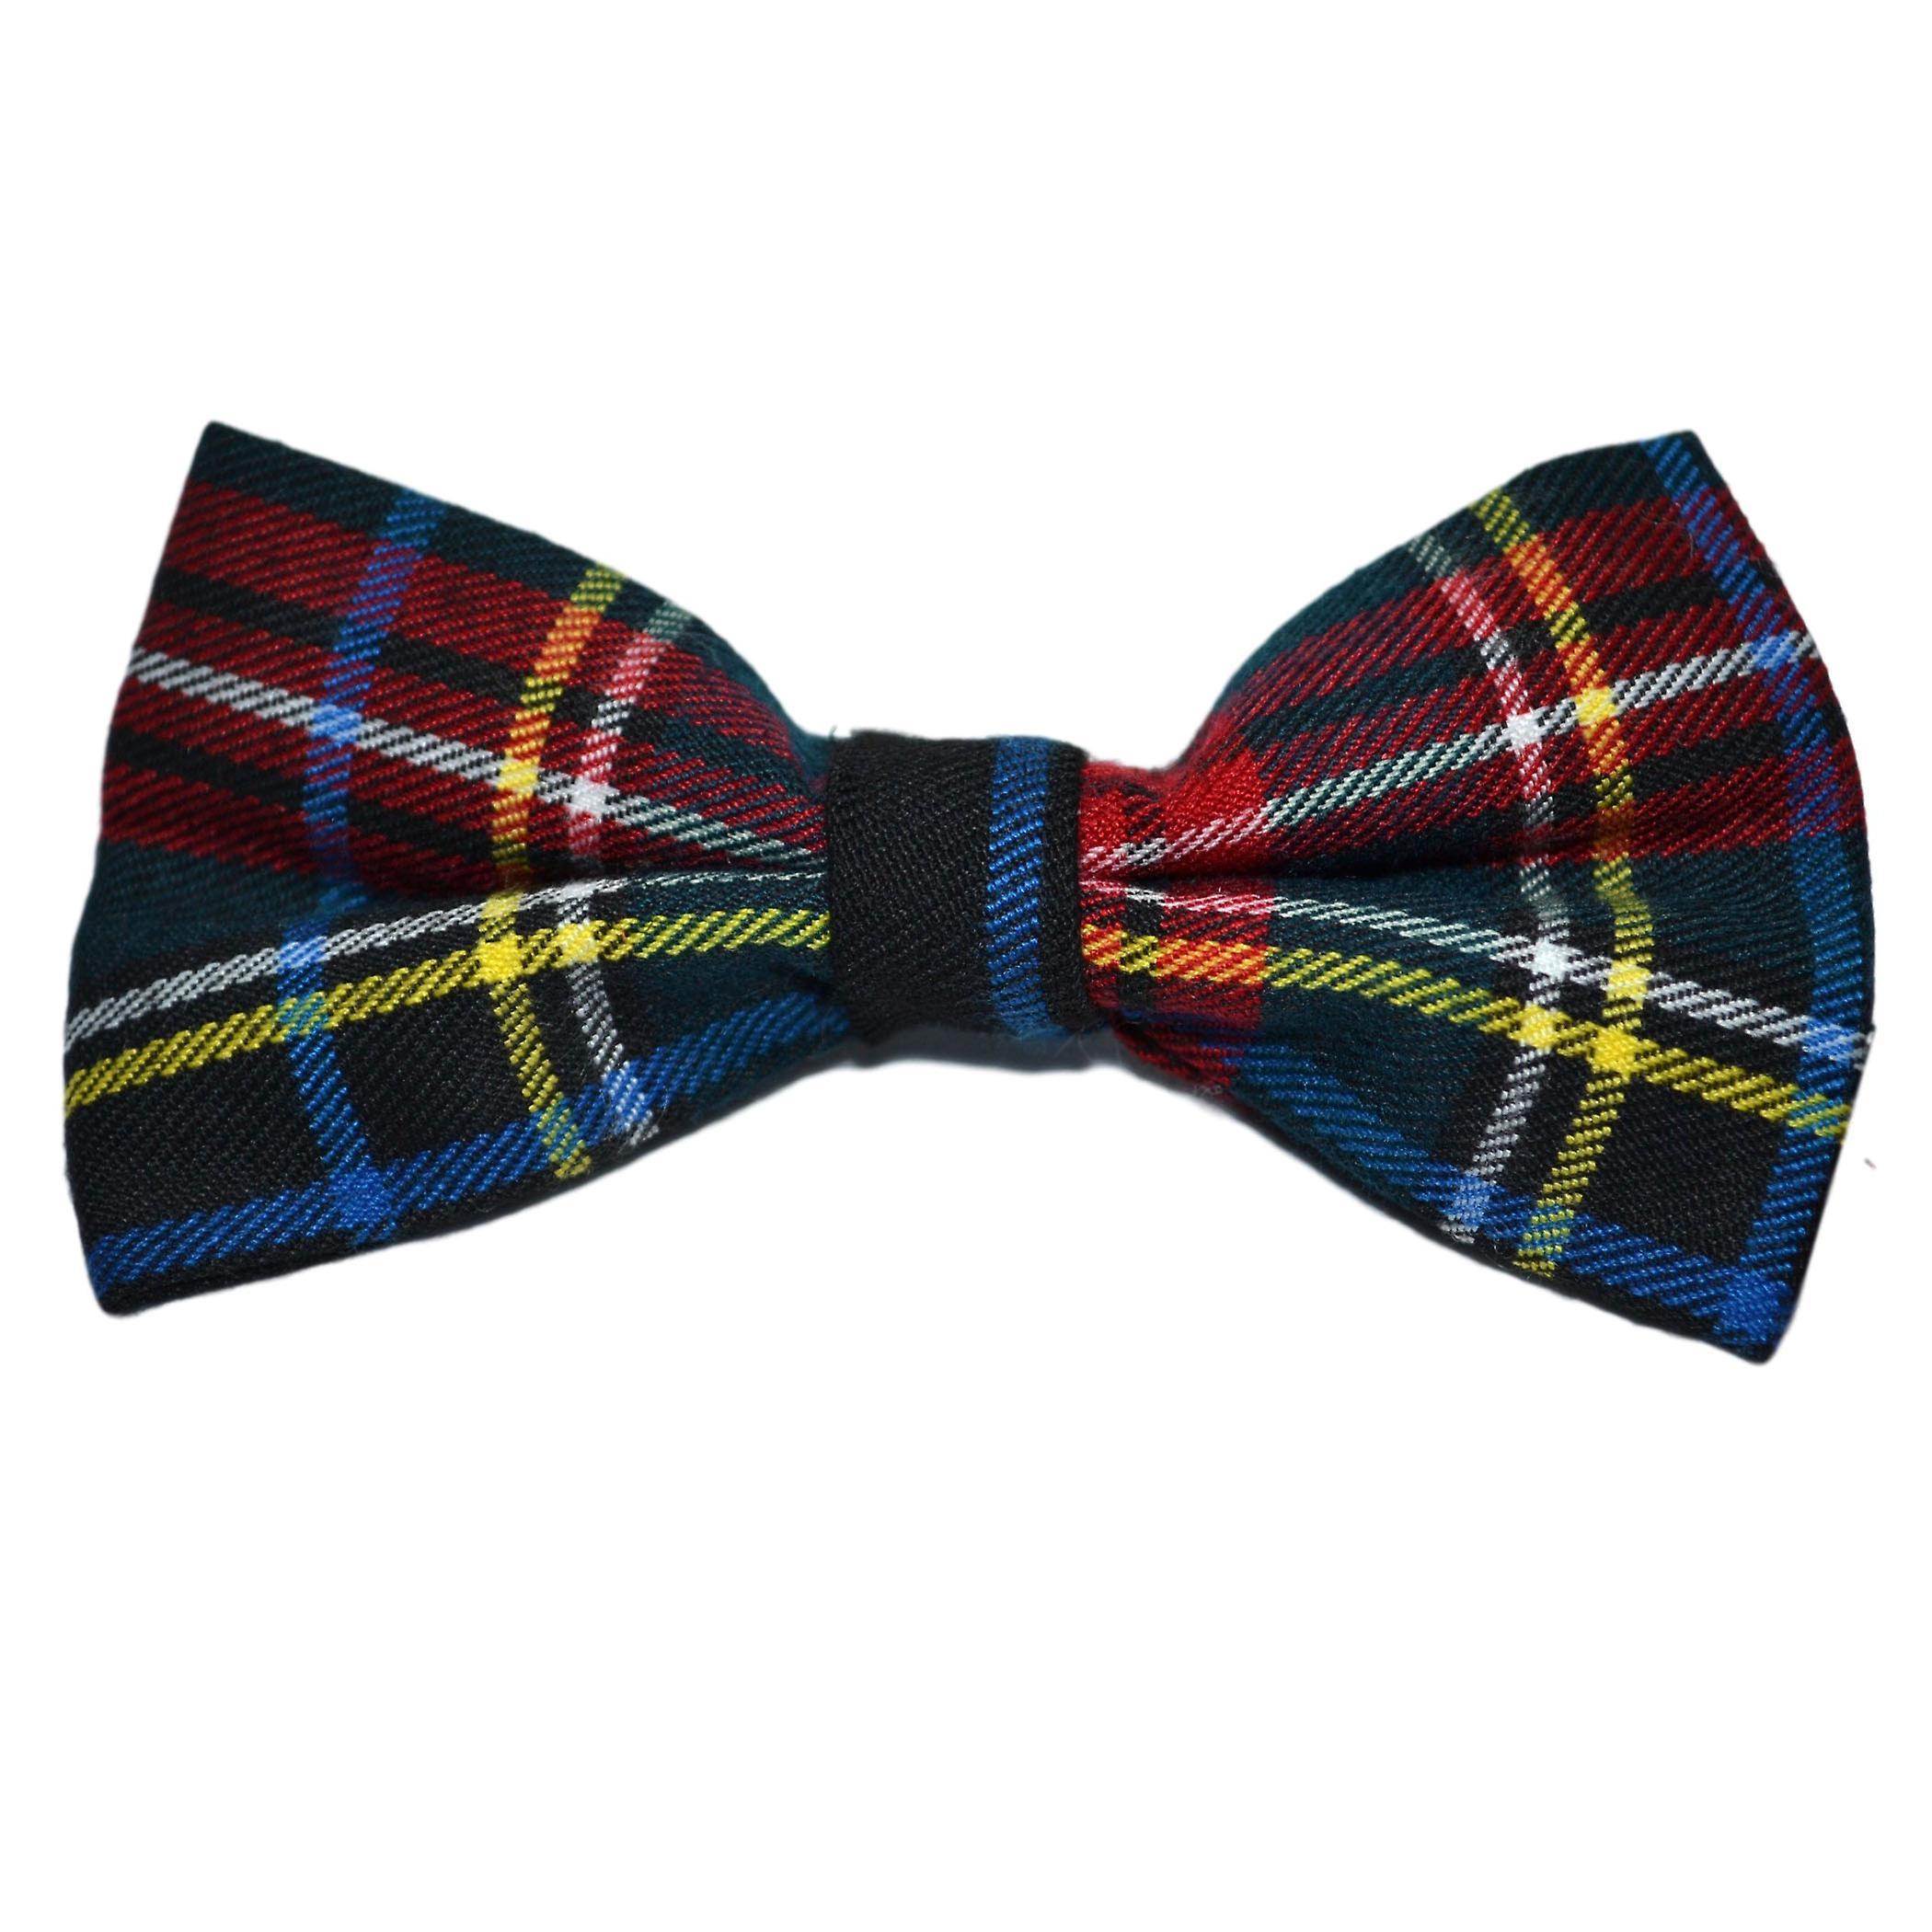 Traditional Dark Green & Black Tartan Bow Tie & Pocket Square Set, Check, Plaid